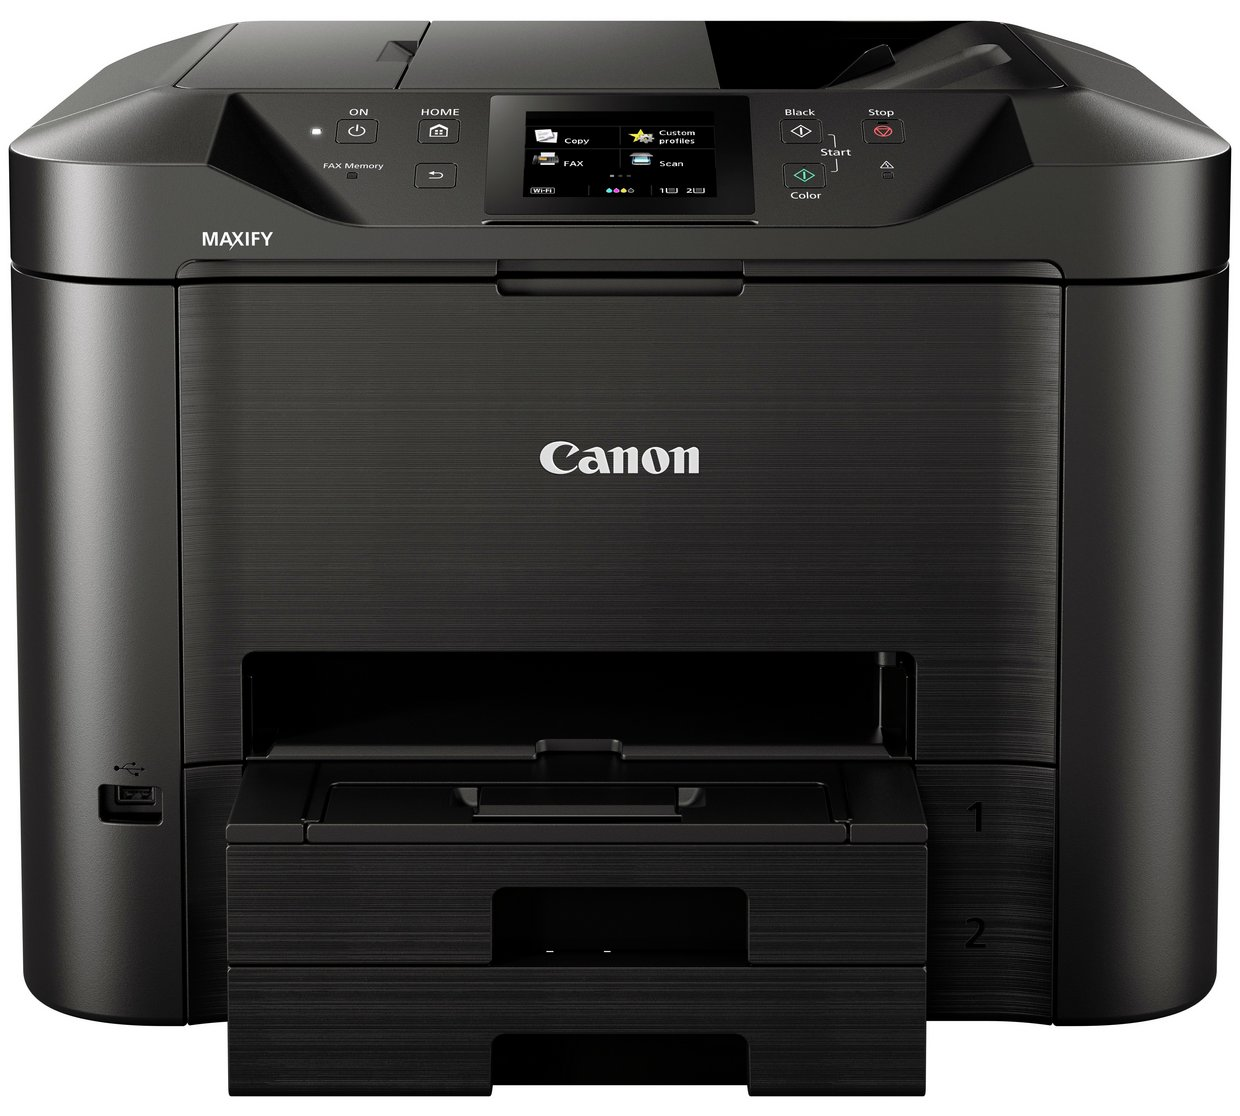 Canon Maxify All-In-One